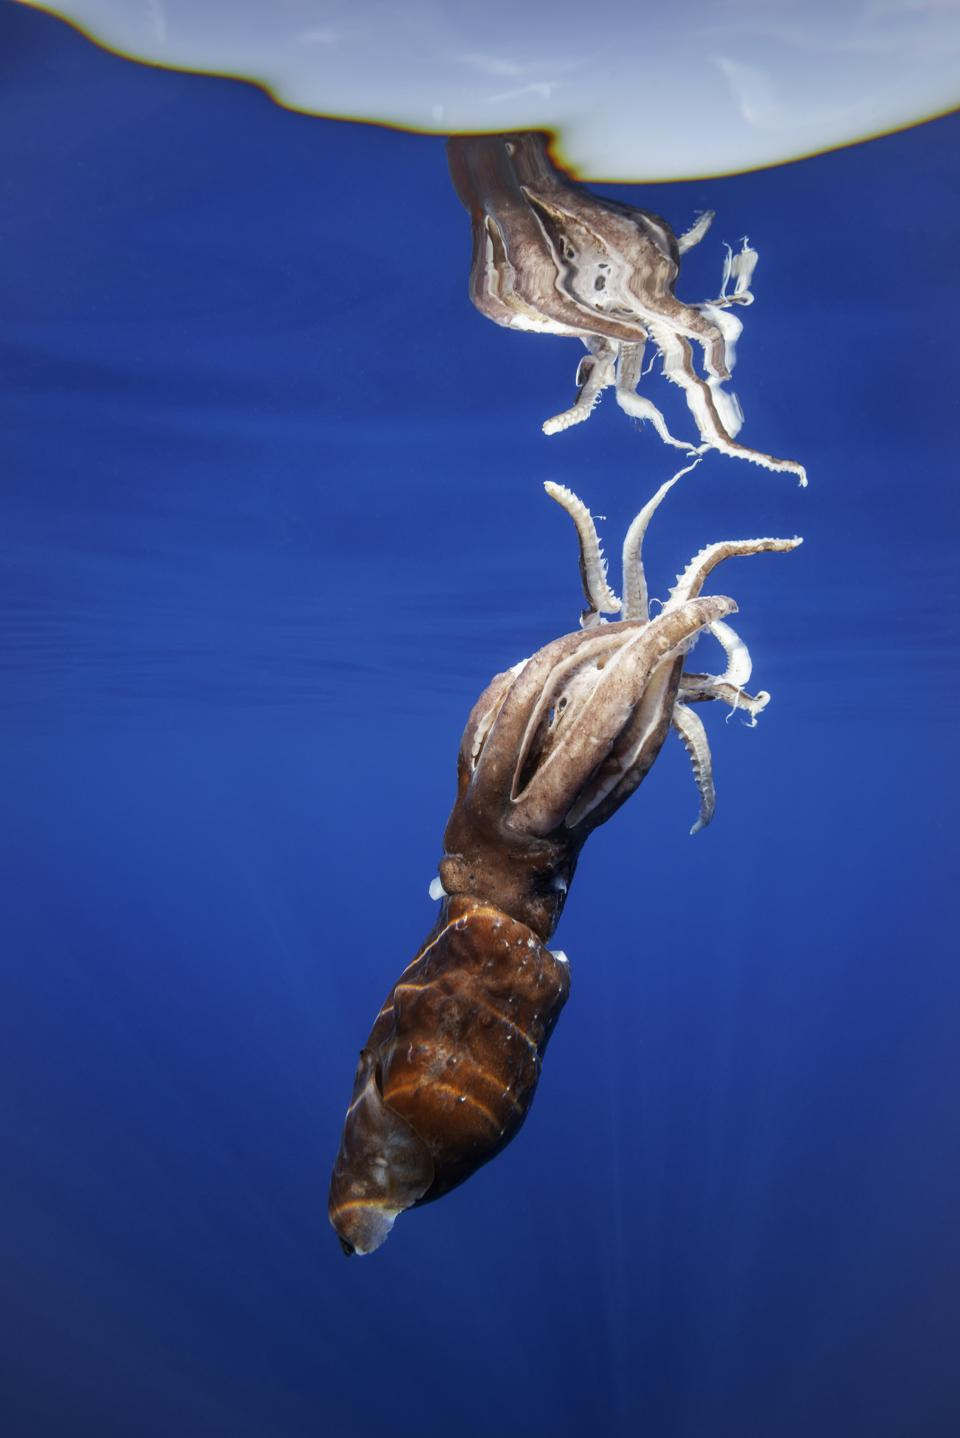 An injured giant squid near the water's surface.